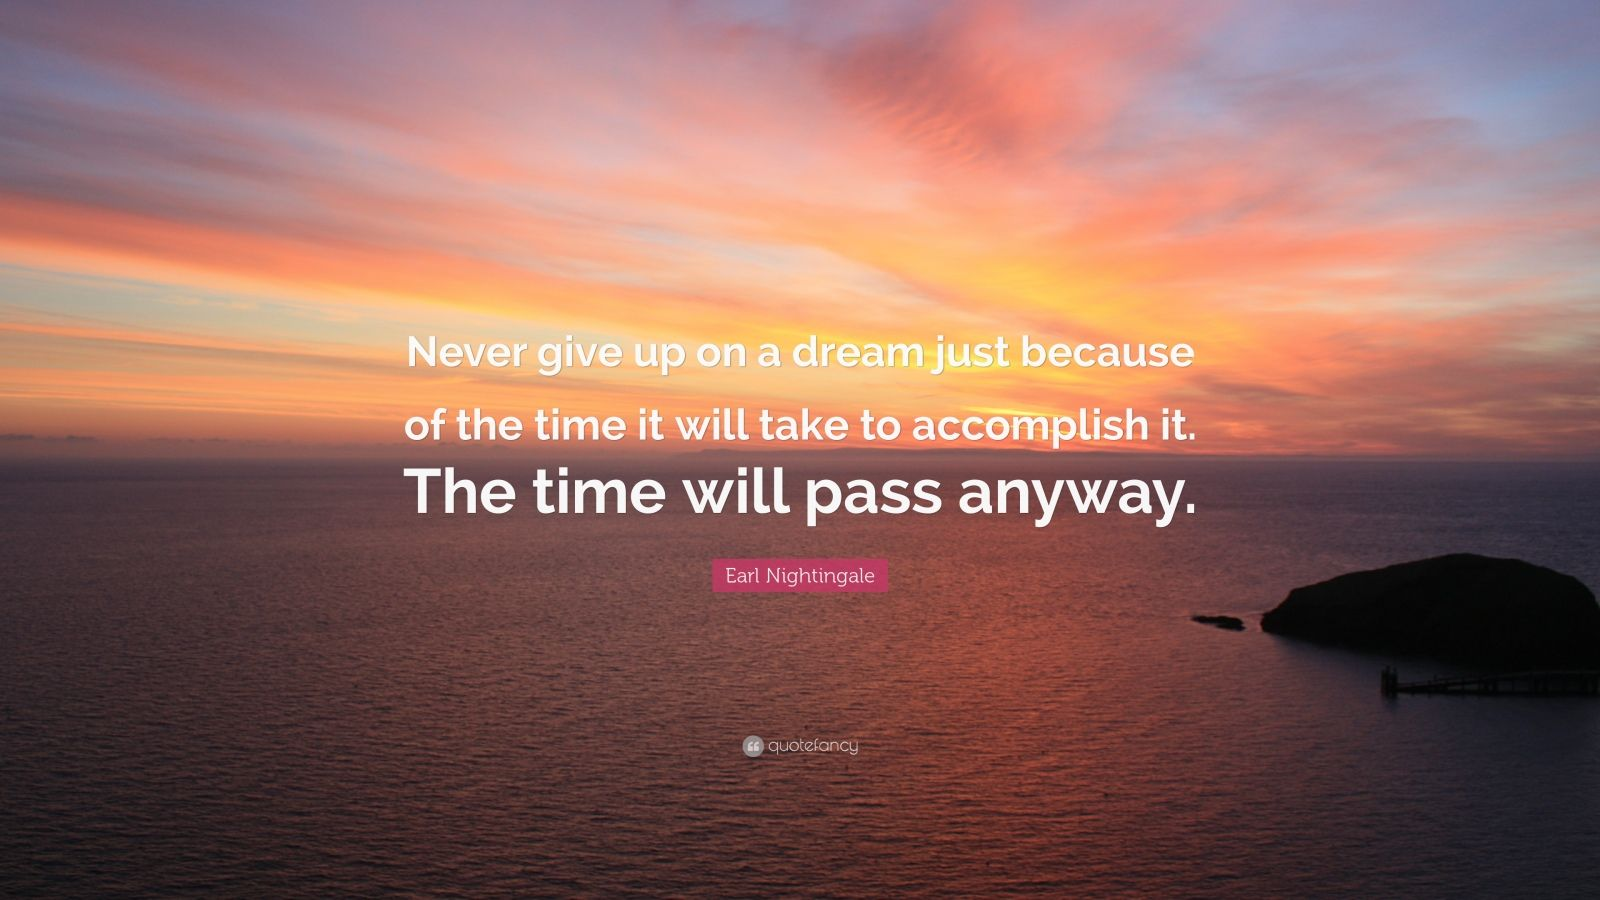 Never Give Up Quotes Wallpaper Earl Nightingale Quote Never Give Up On A Dream Just